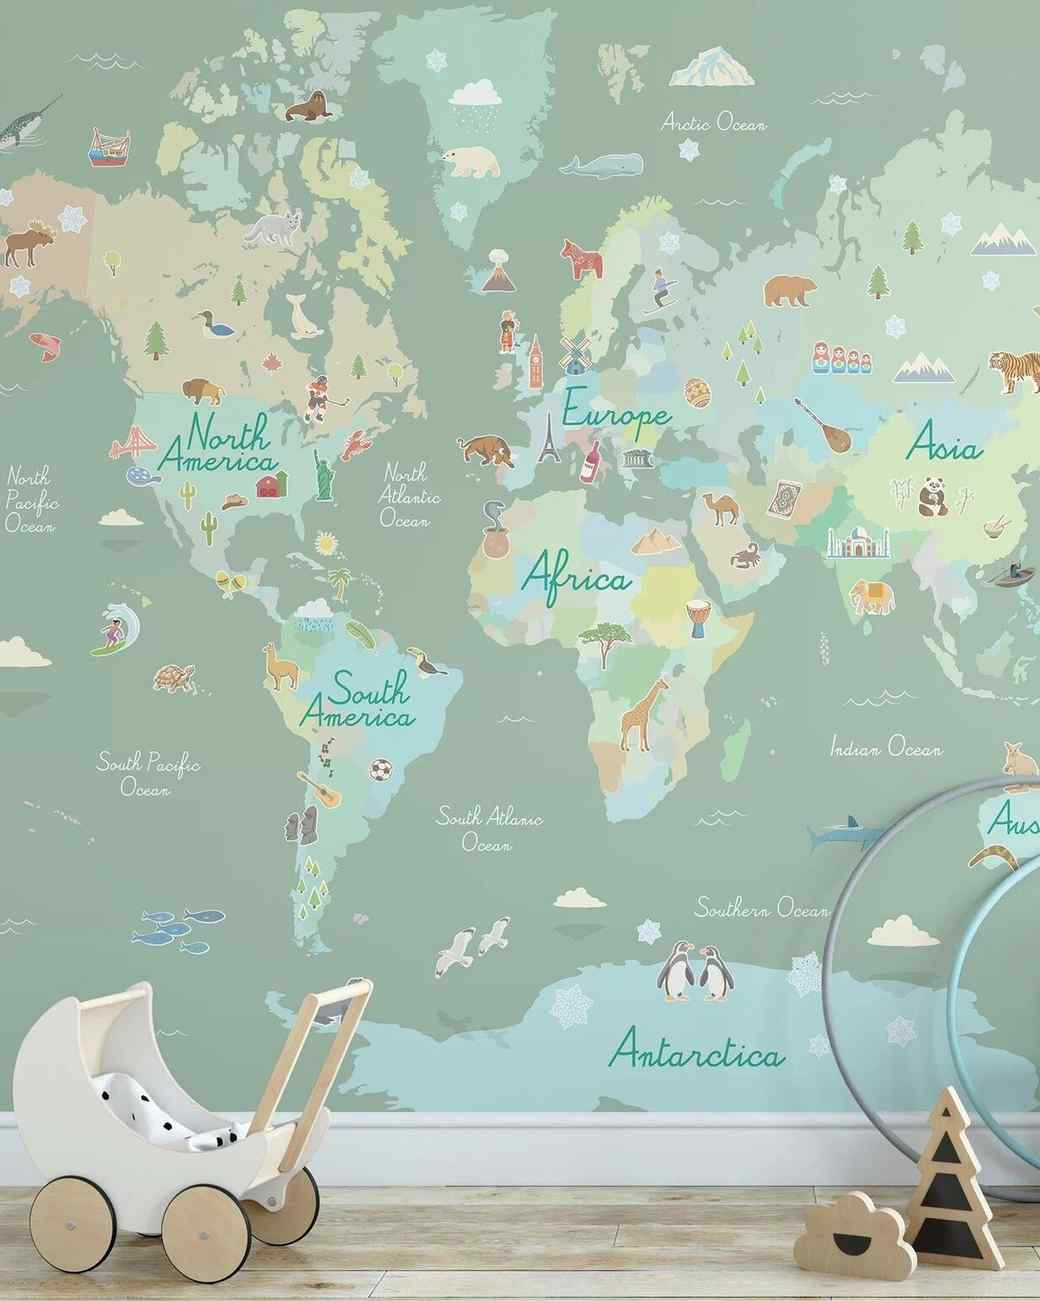 alloway world peel-and-stick wall mural